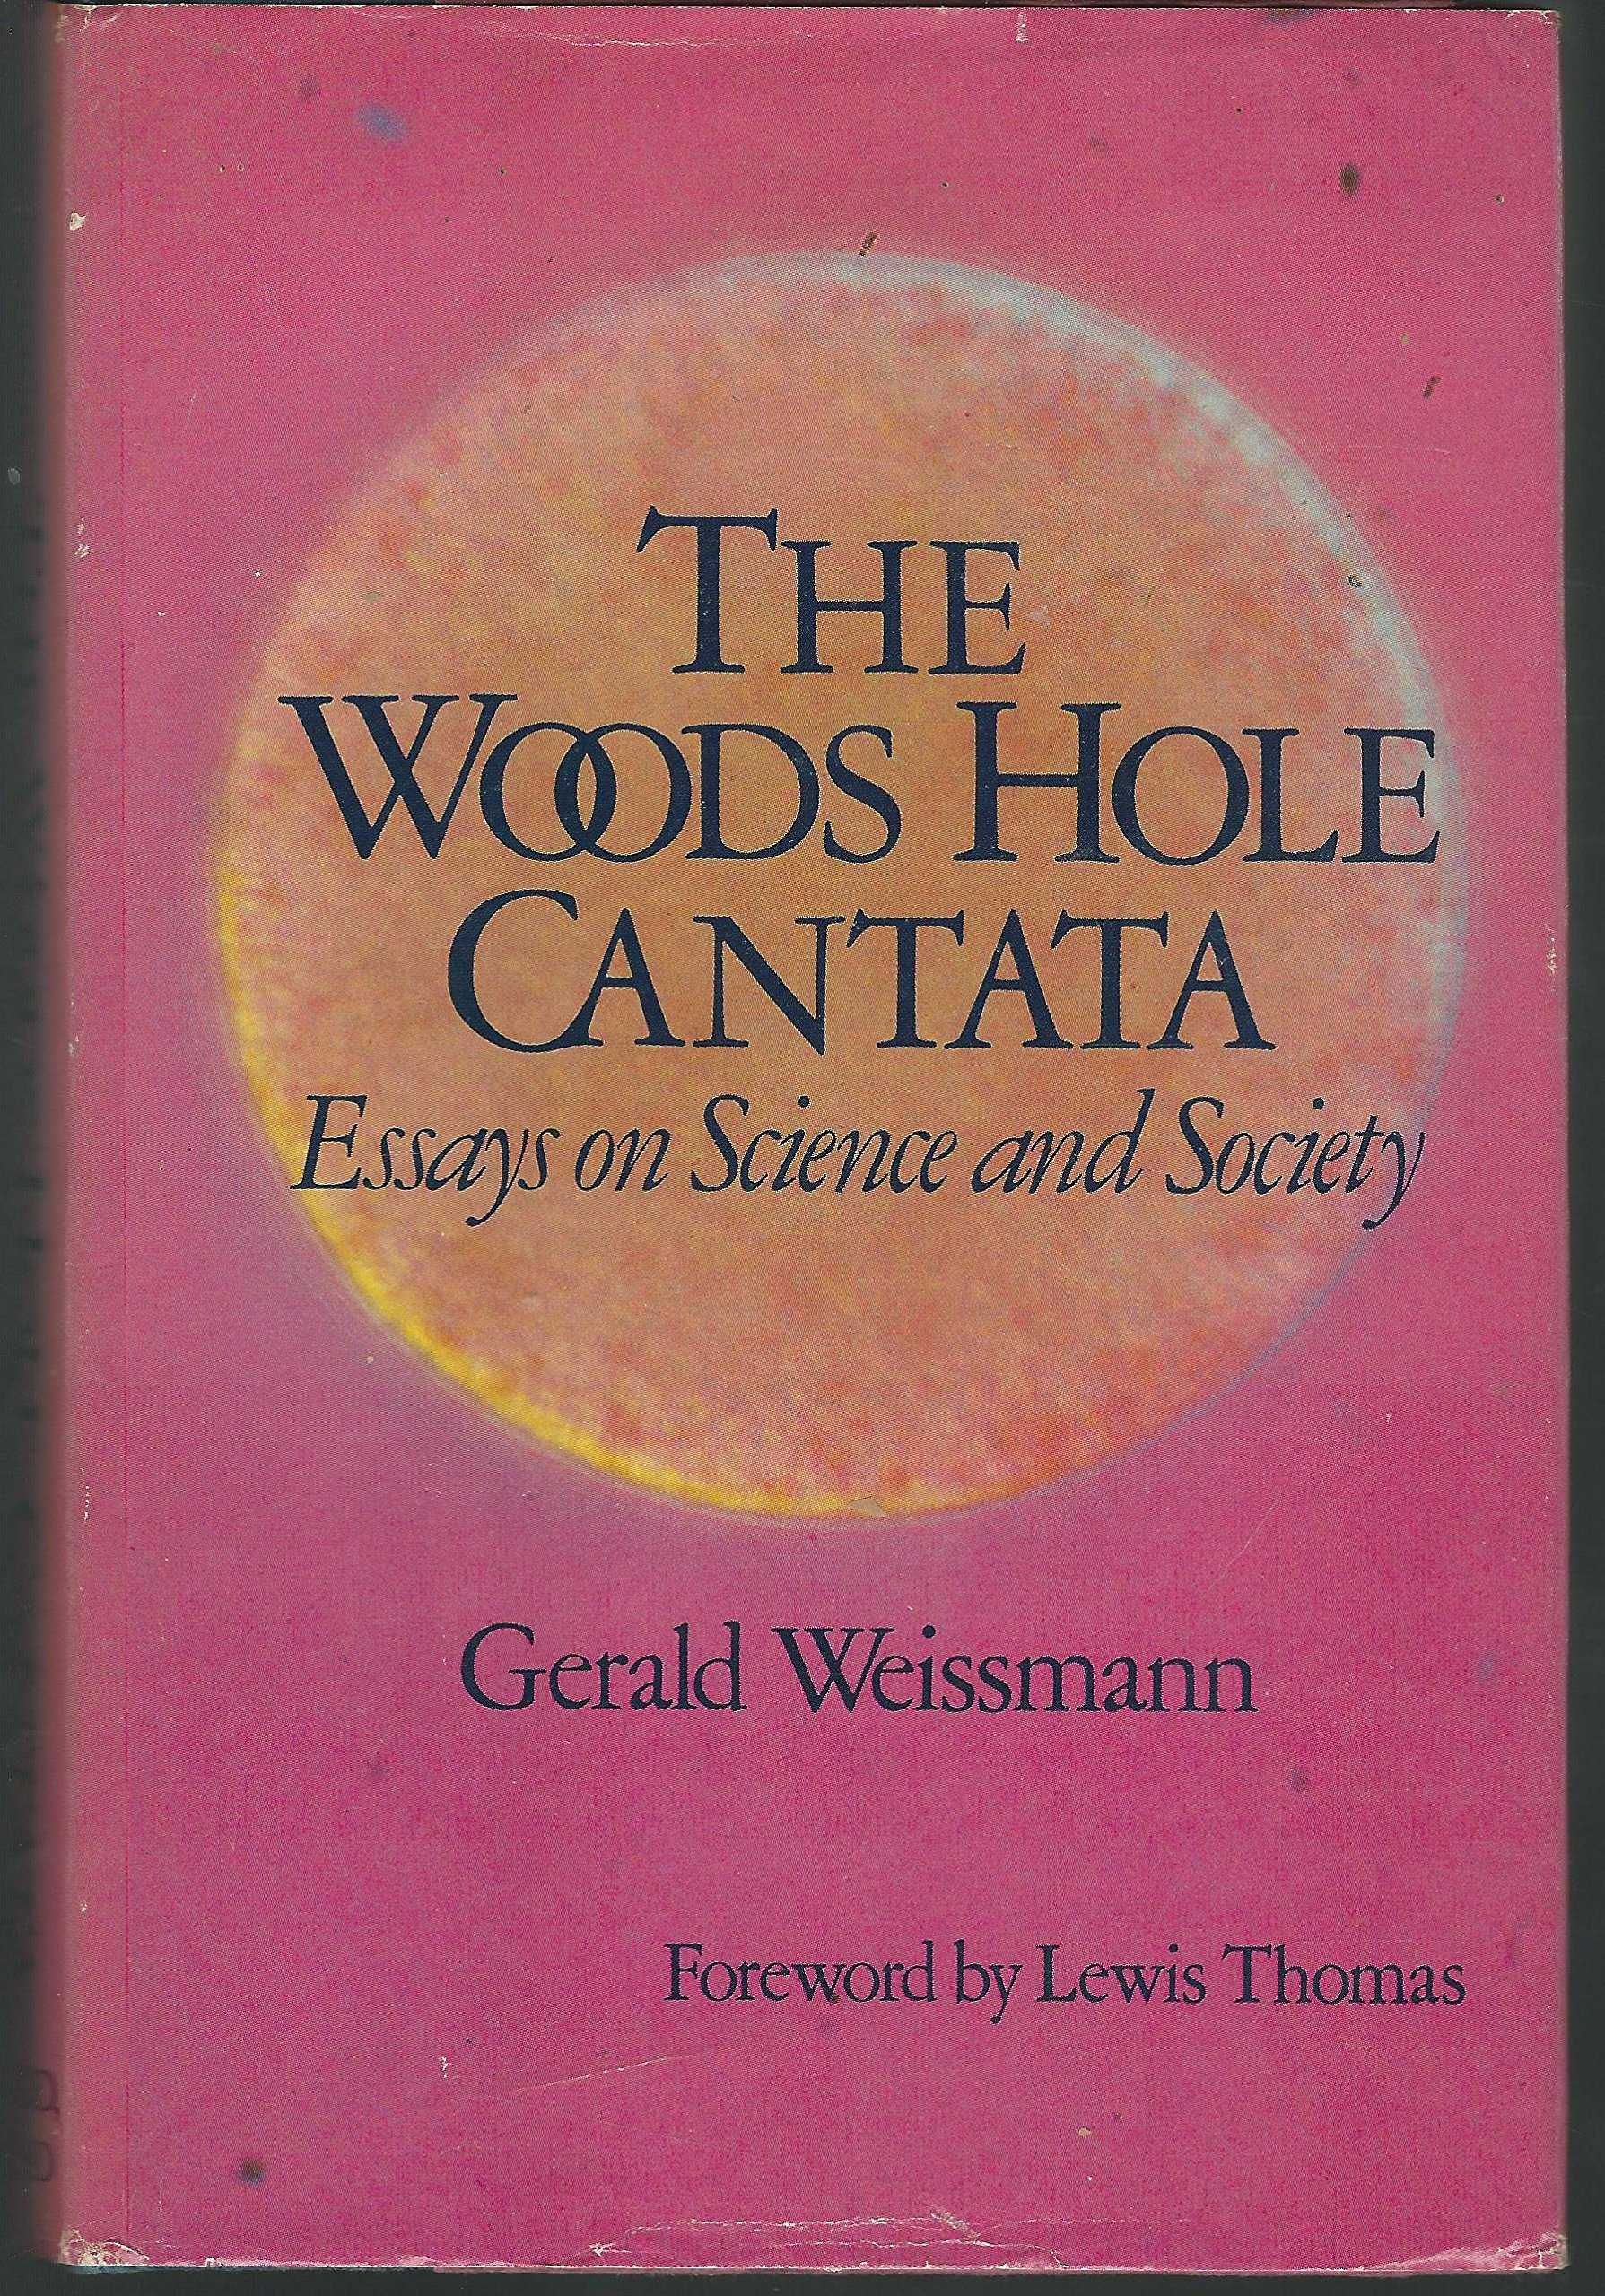 The Woods Hole Cantata Essays On Science And Society Gerald  The Woods Hole Cantata Essays On Science And Society Paperback  February    English Essay Story also Analysis And Synthesis Essay Essays About English